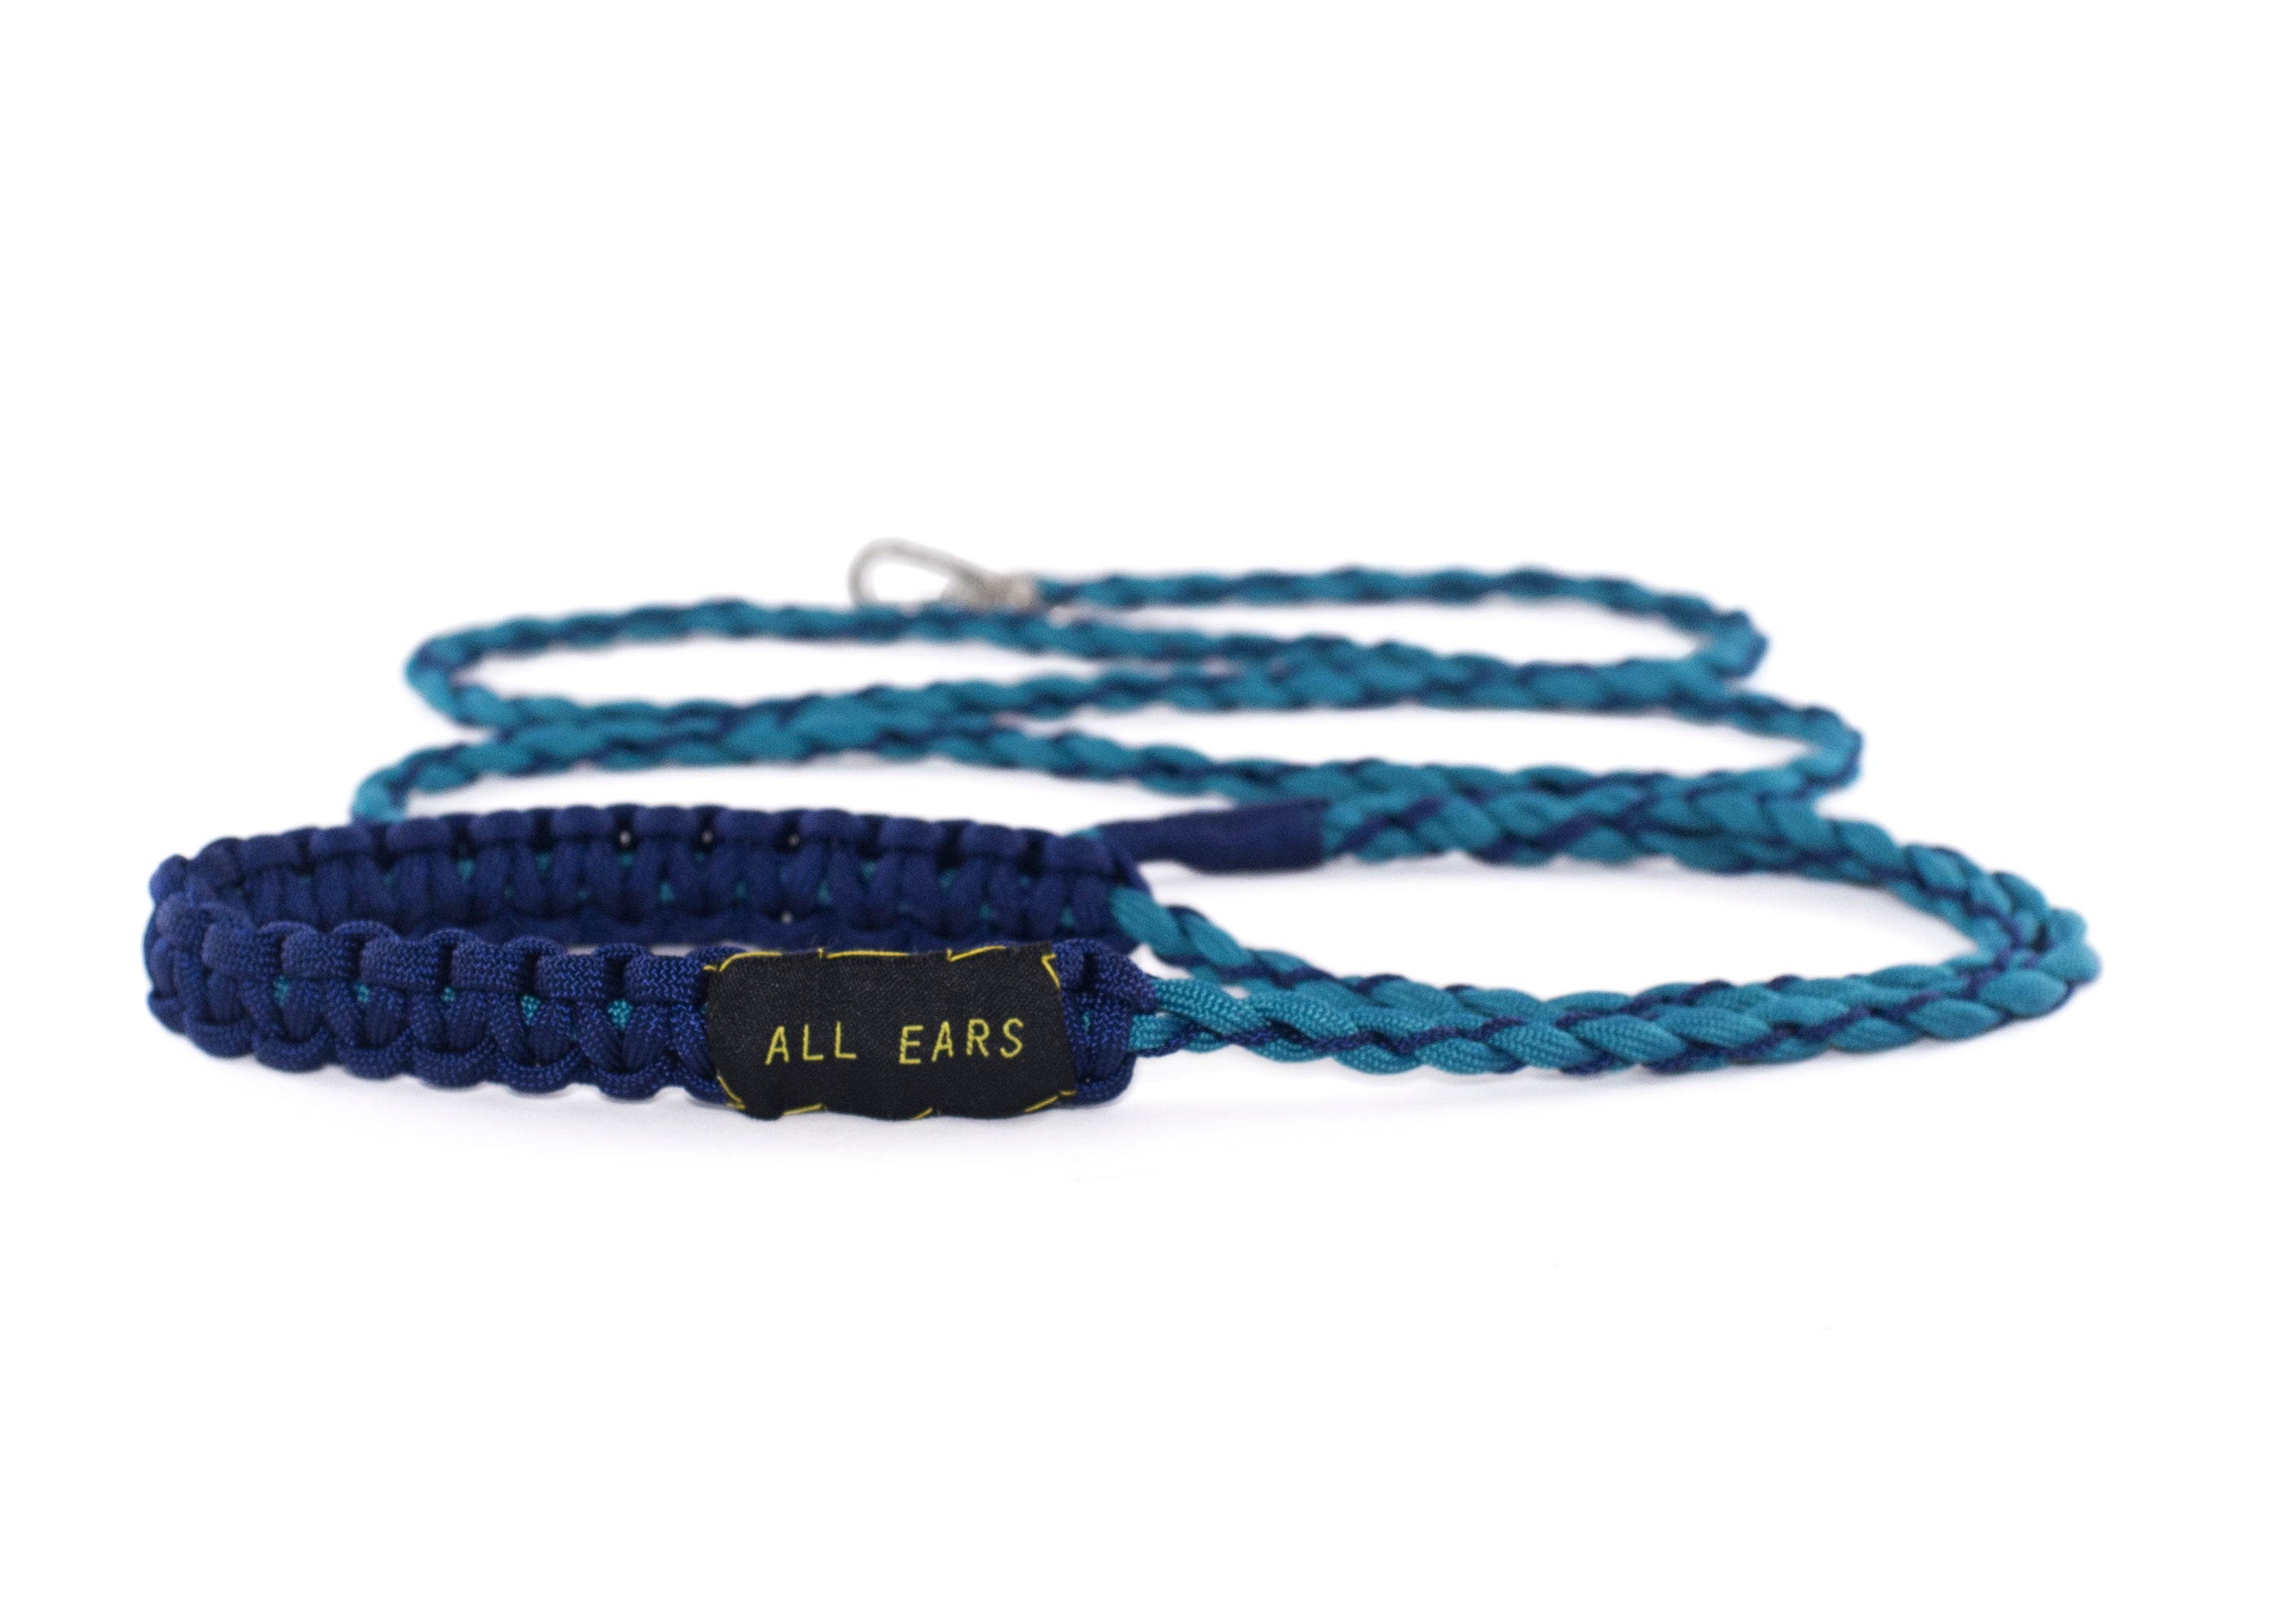 Cat Leash Braided Paracord 550 - Teal and Midnight Blue